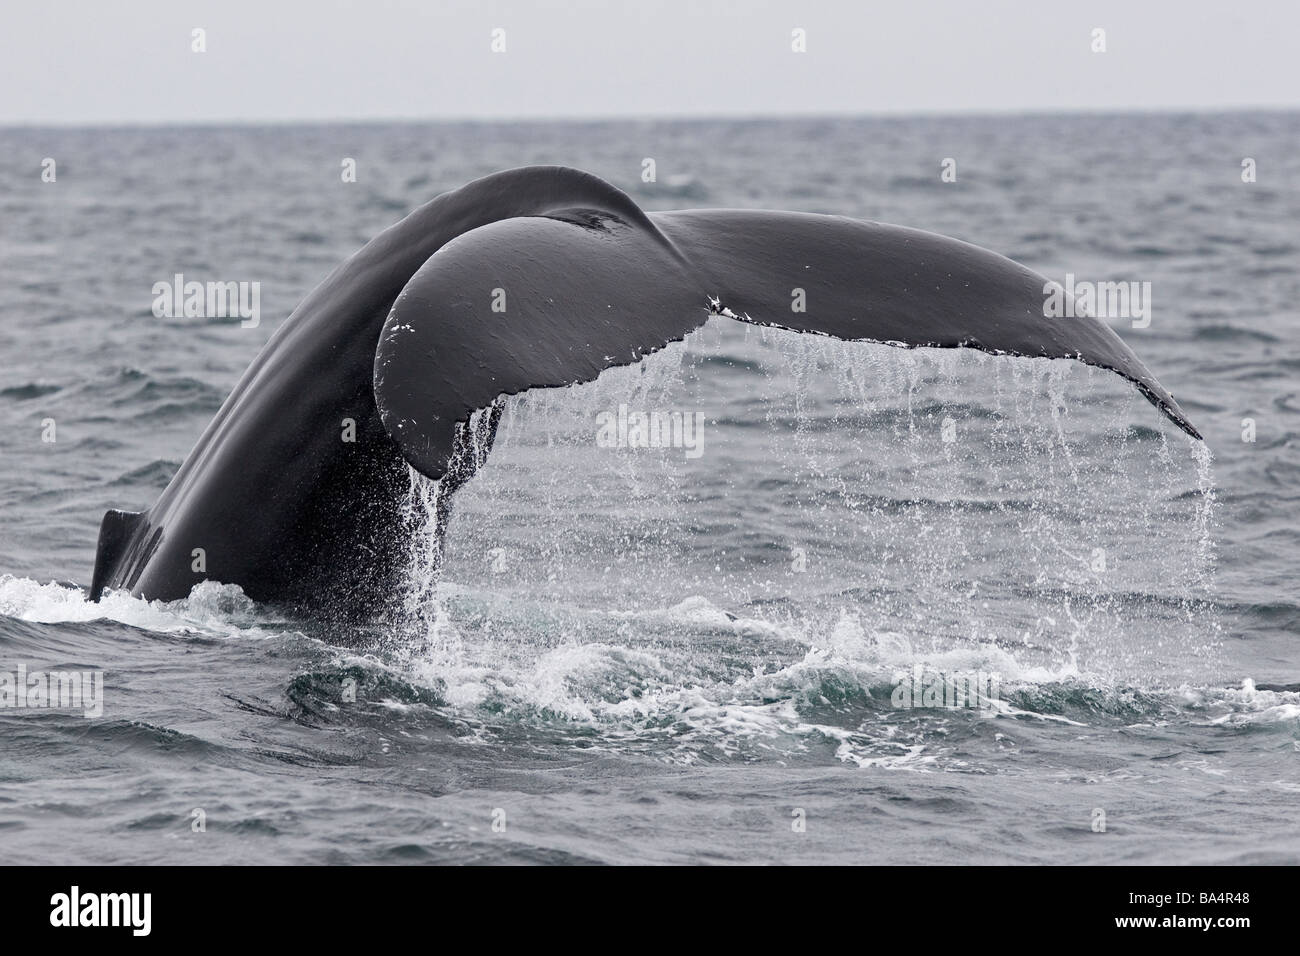 Humpback whale tail, fluking in North Atlantic - Stock Image